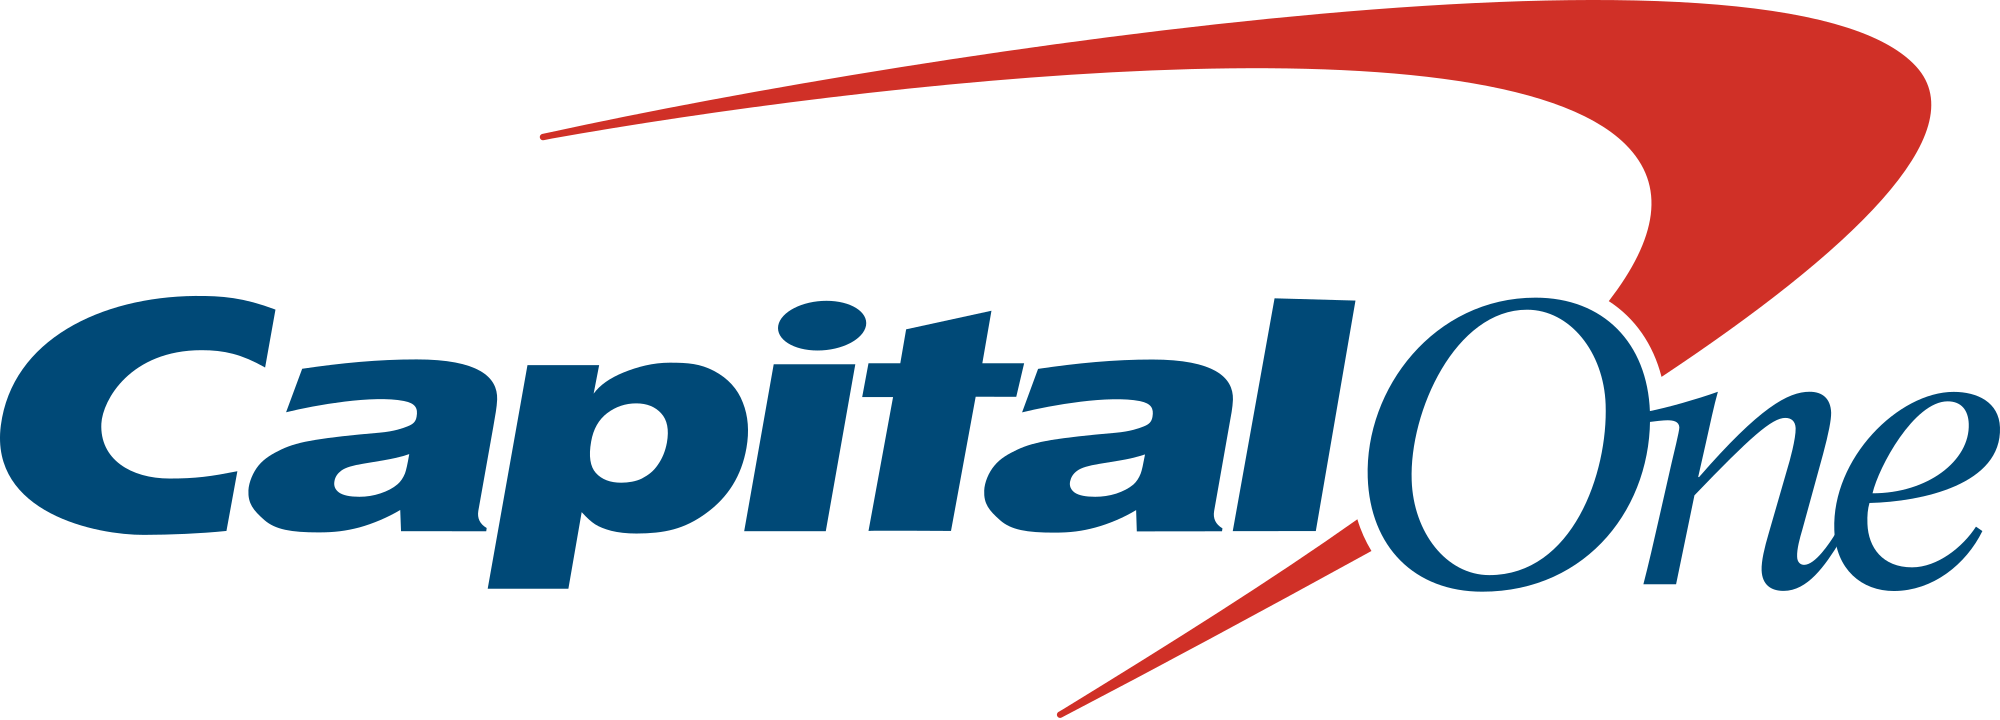 Capital One logo.